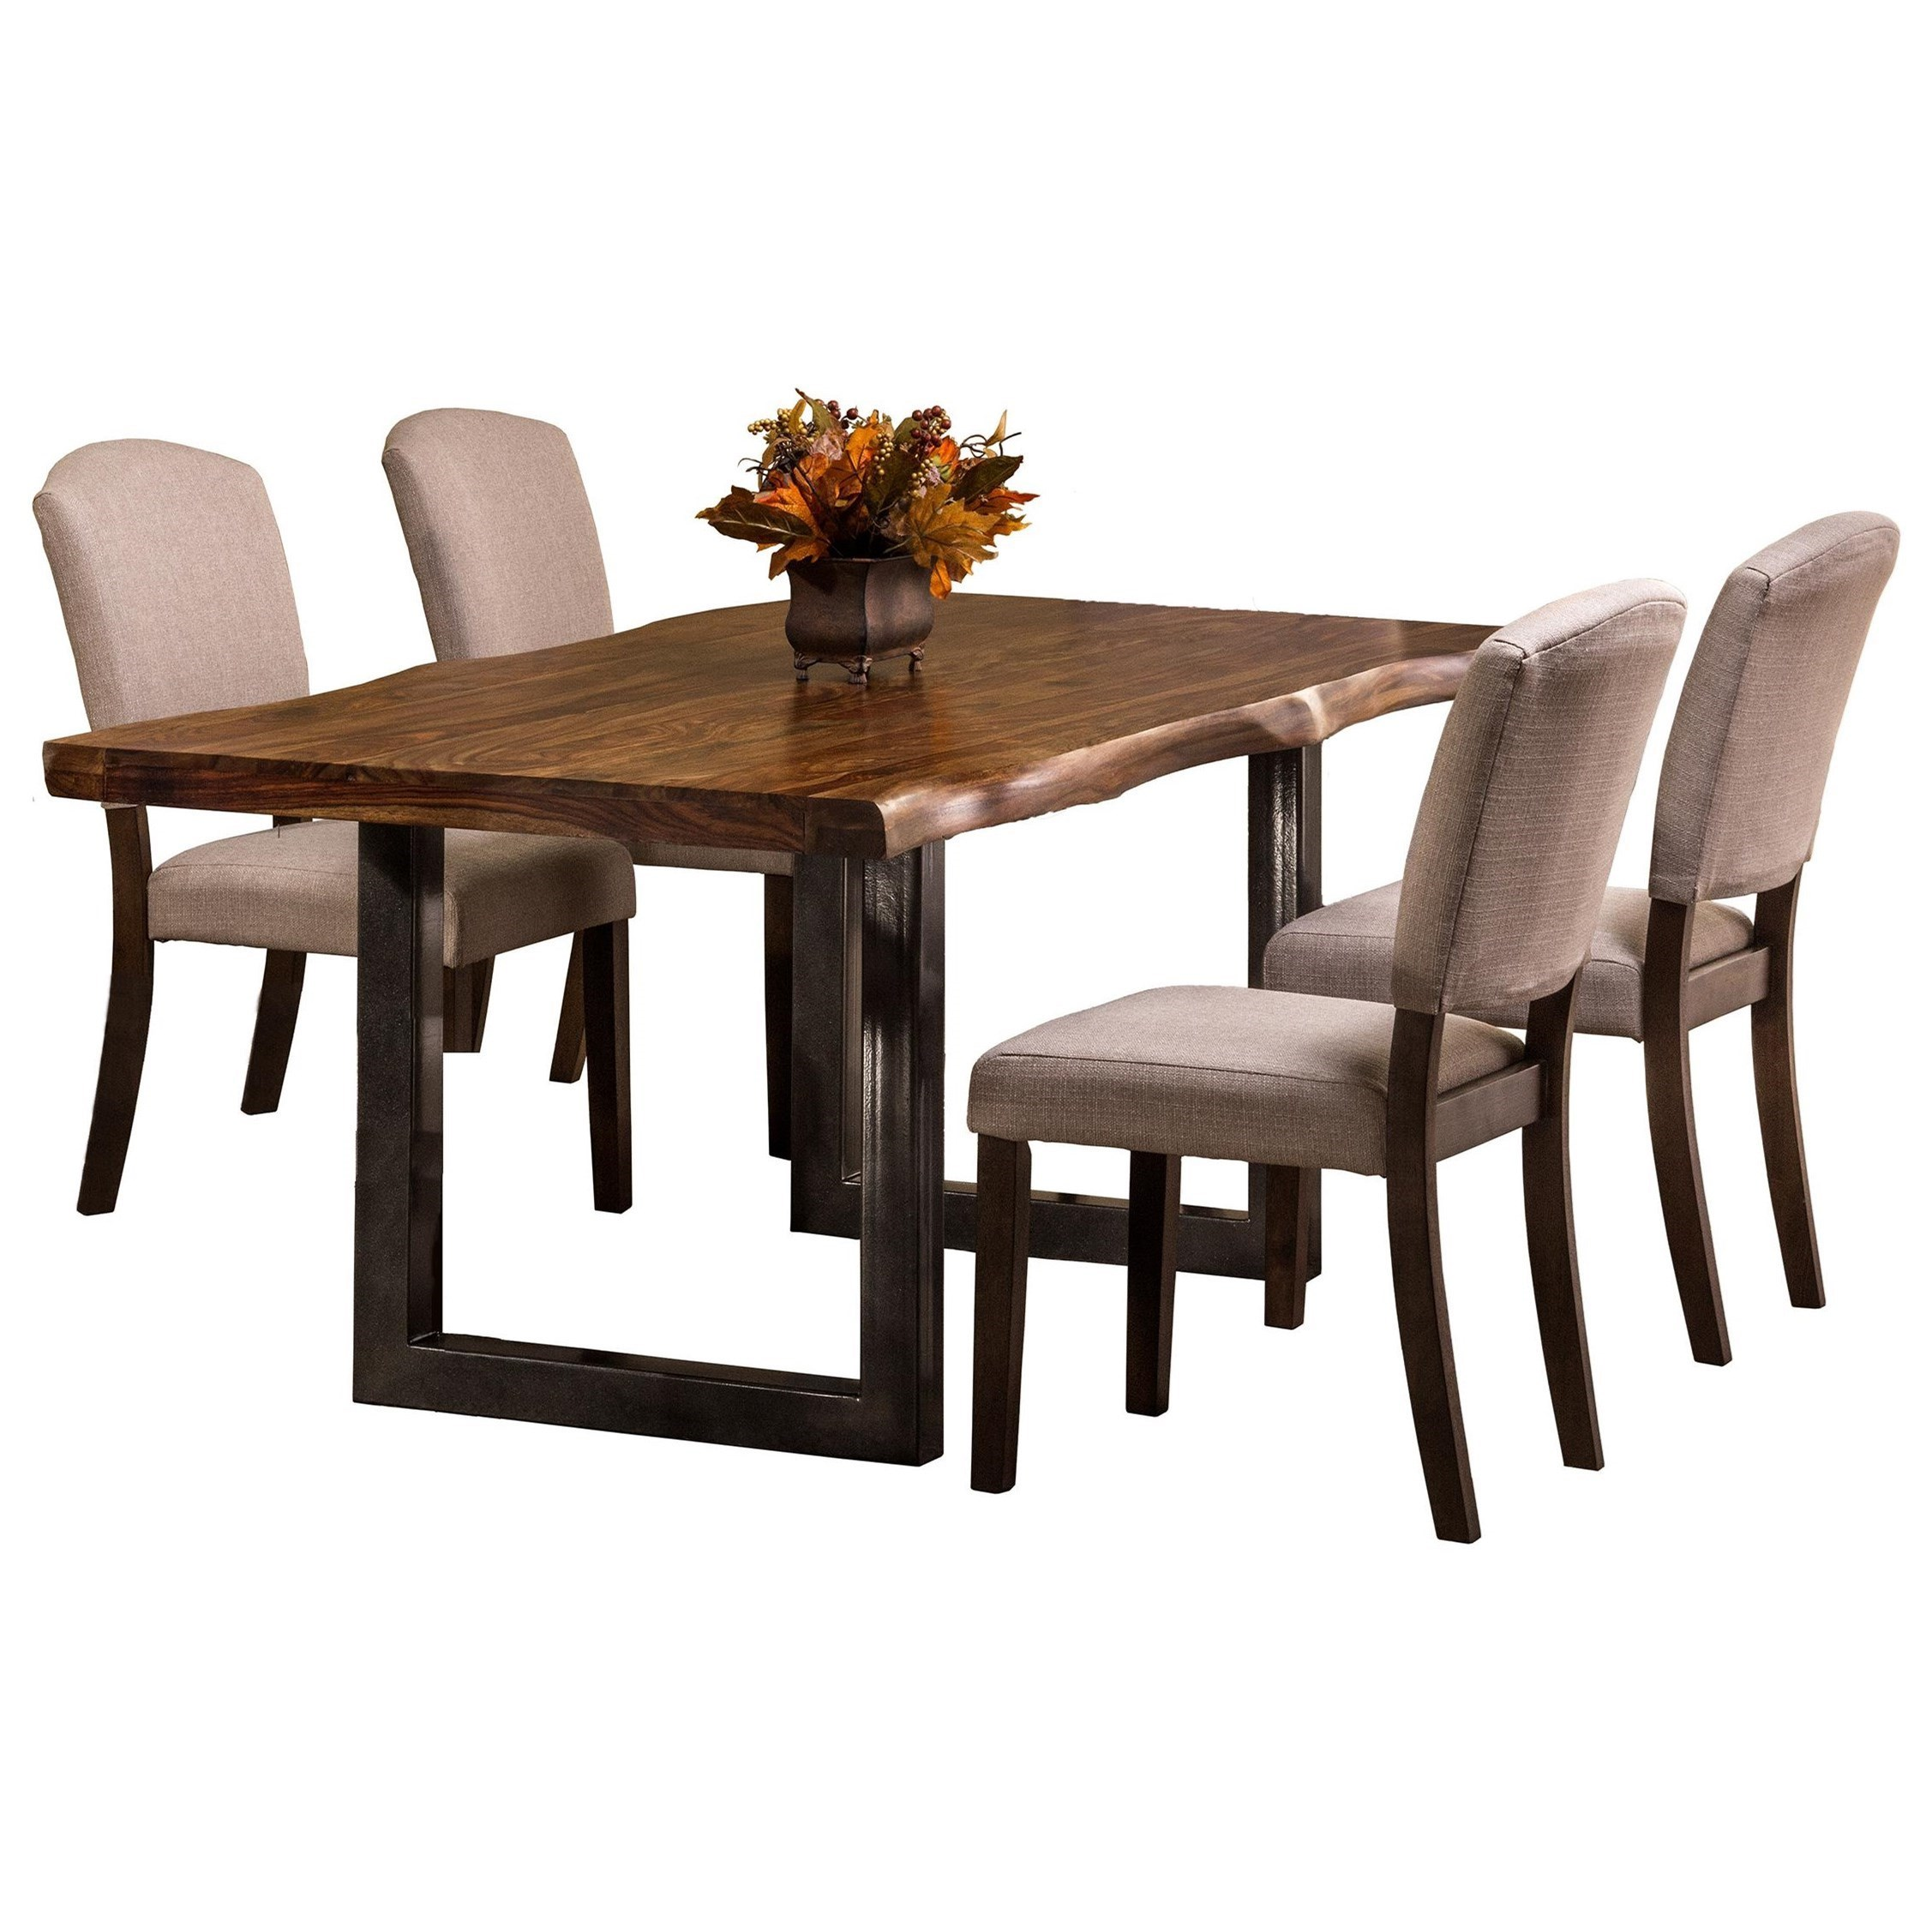 Emerson 5 Piece Rectangle Dining Set With Natural Sheesham Wood By Hillsdale